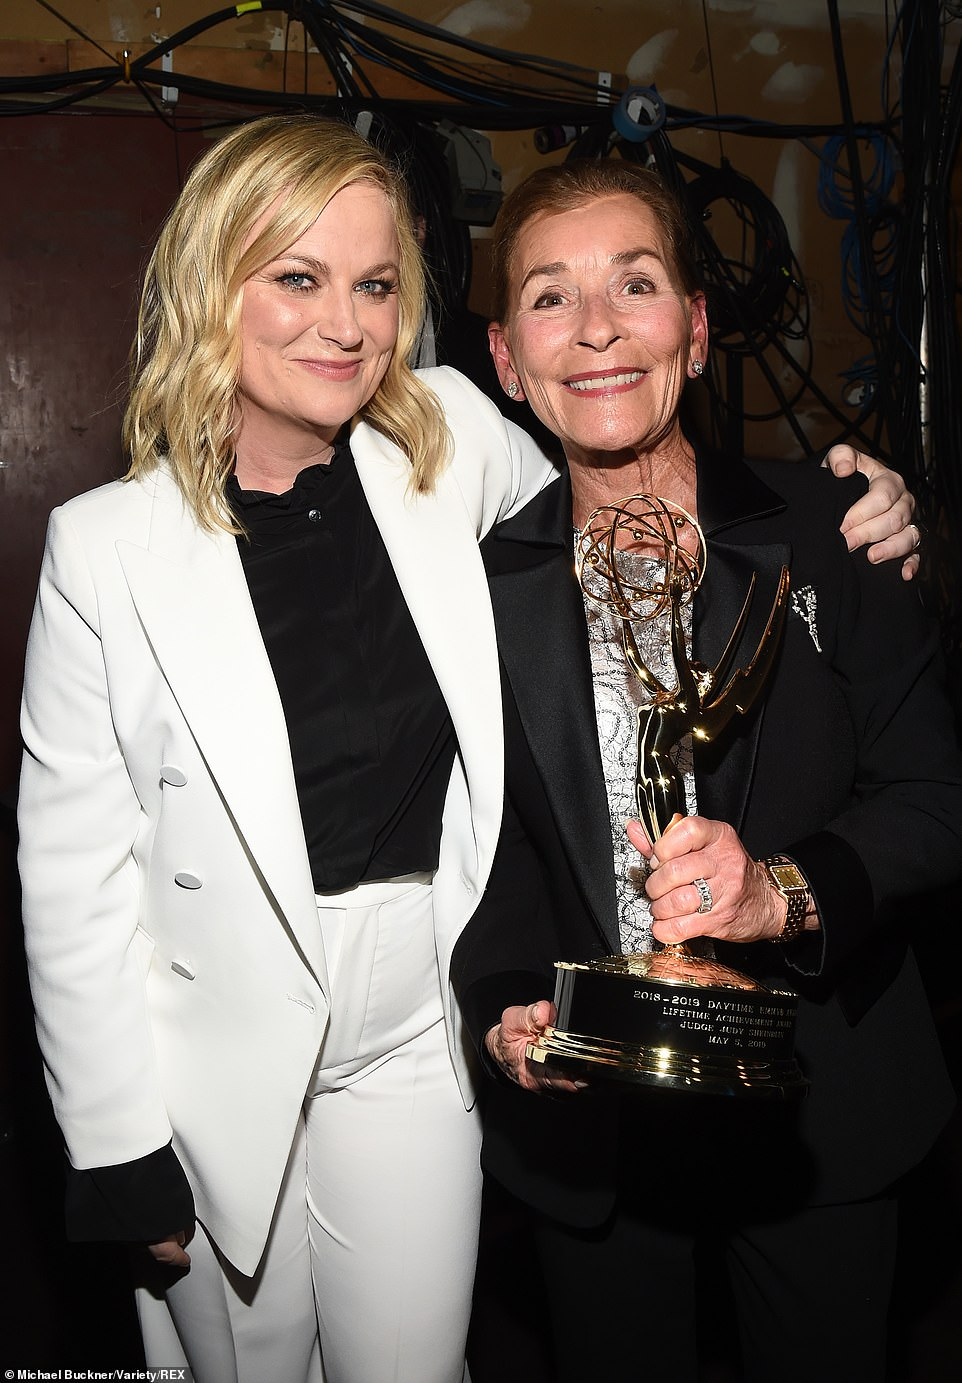 Proud moment: Poehler struck a pose alongside Judy